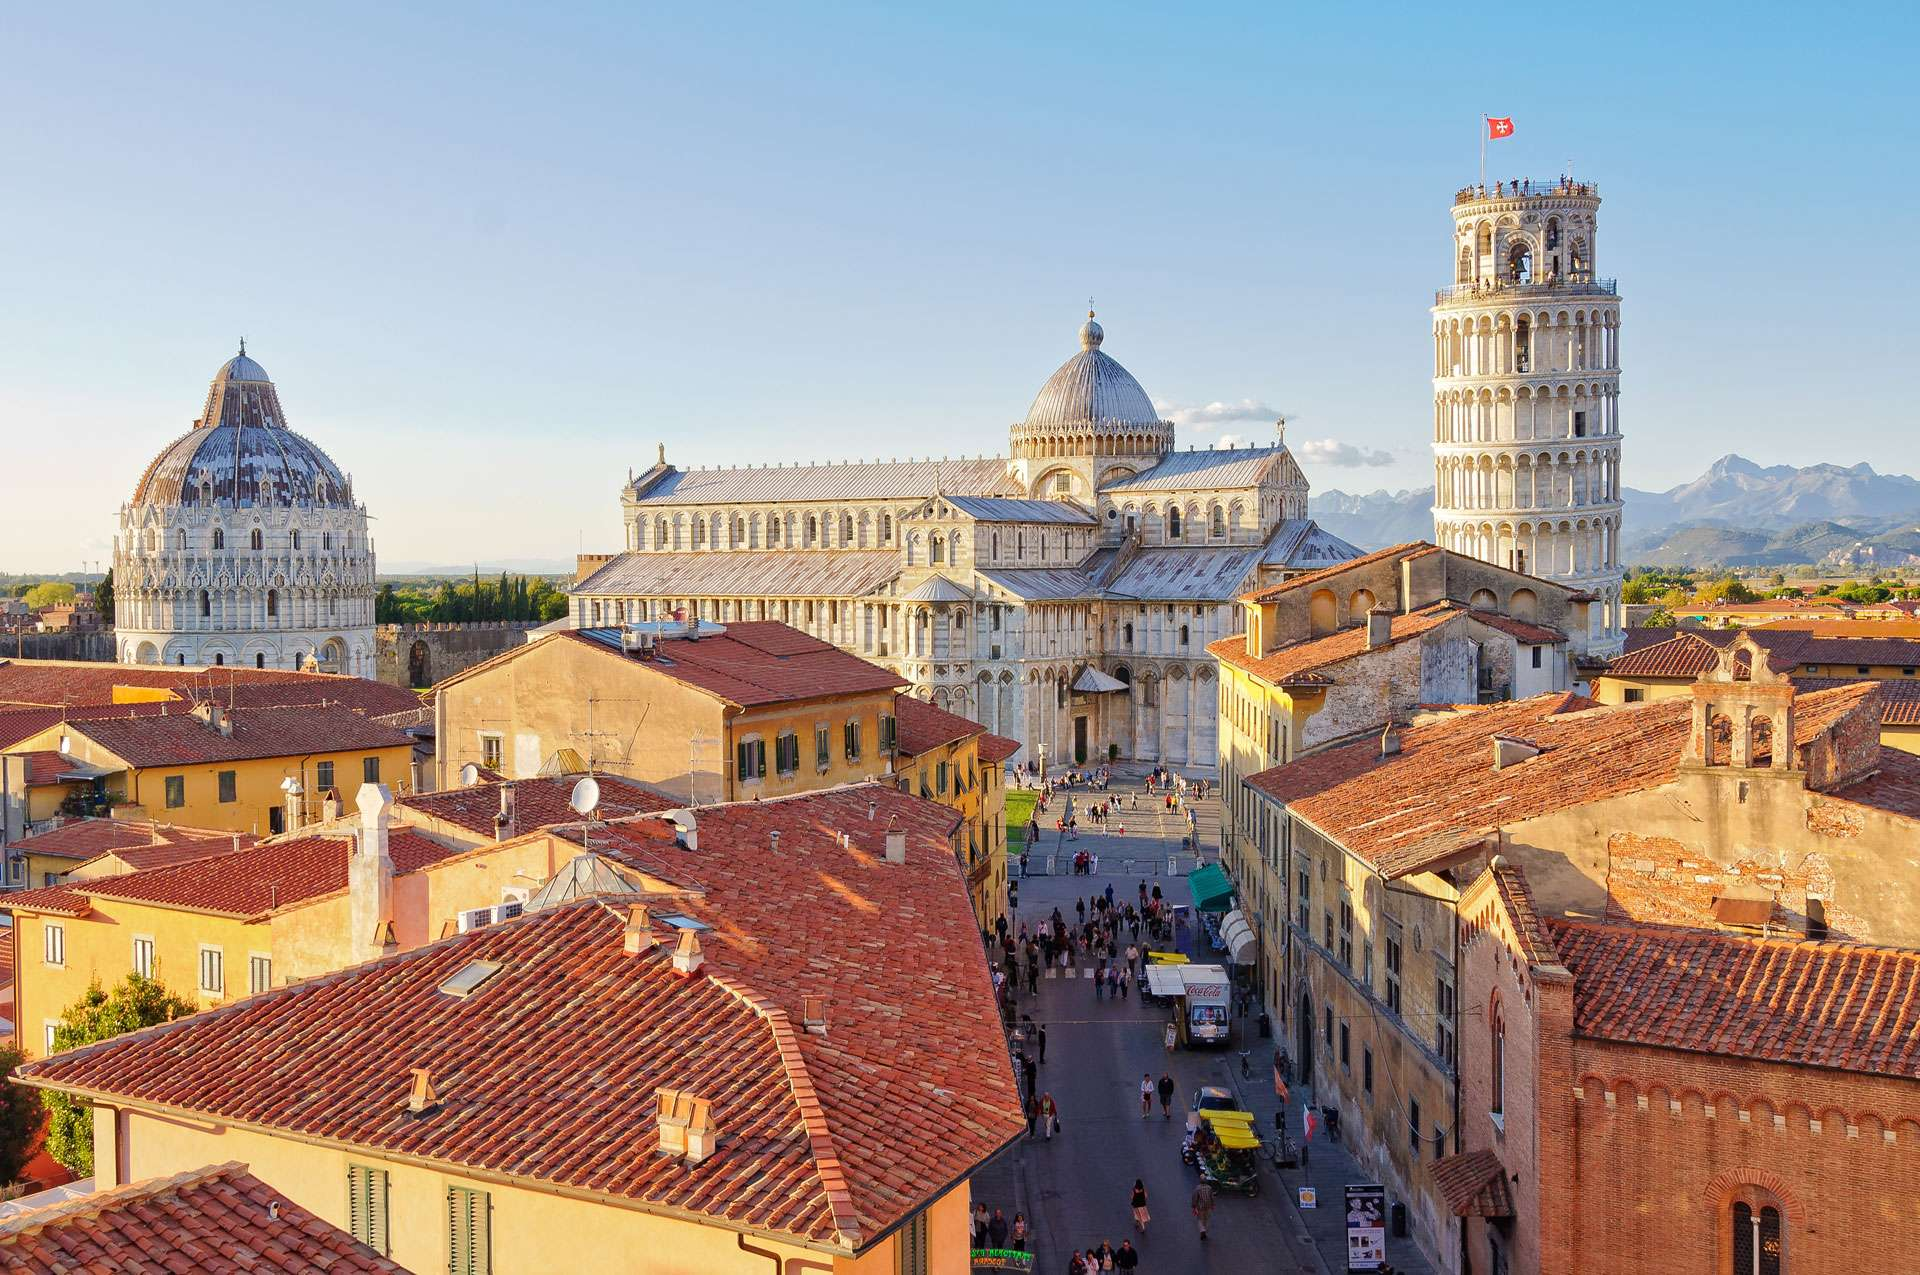 One Day in Pisa: An Insider's Guide Beyond the Leaning Tower